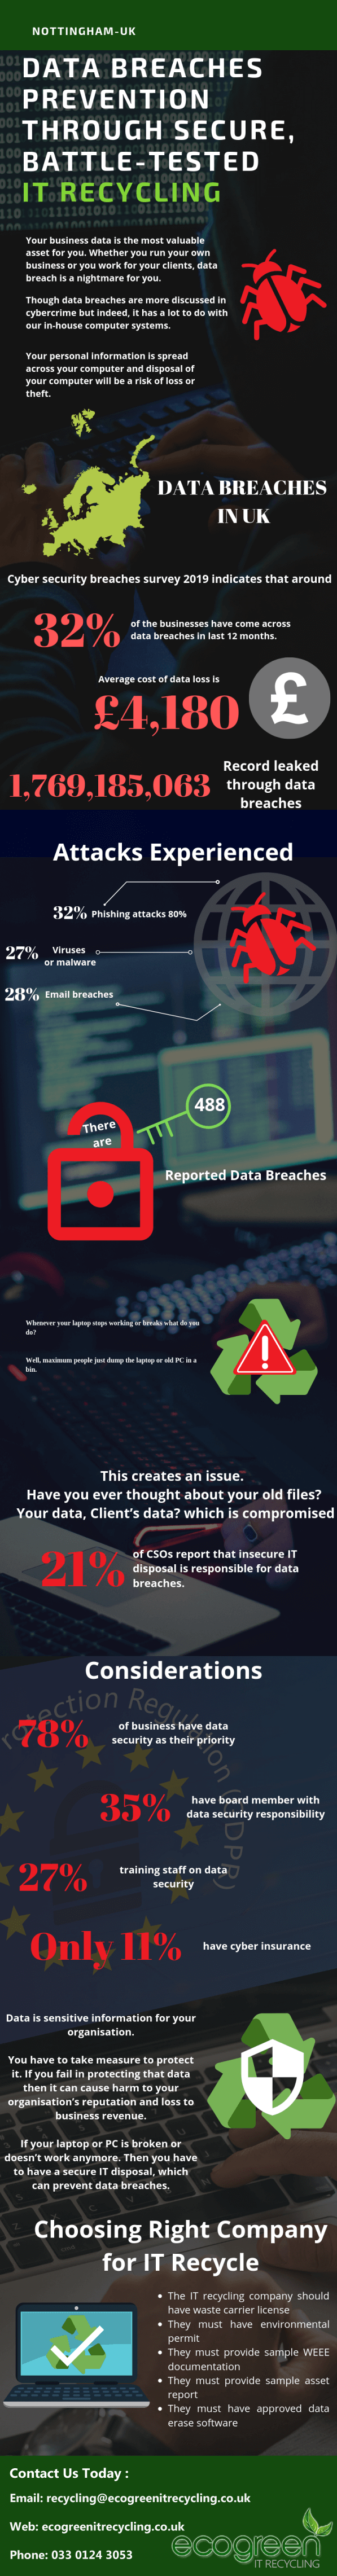 Recycling Key Prevention To Data Breaches-infographic-plaza